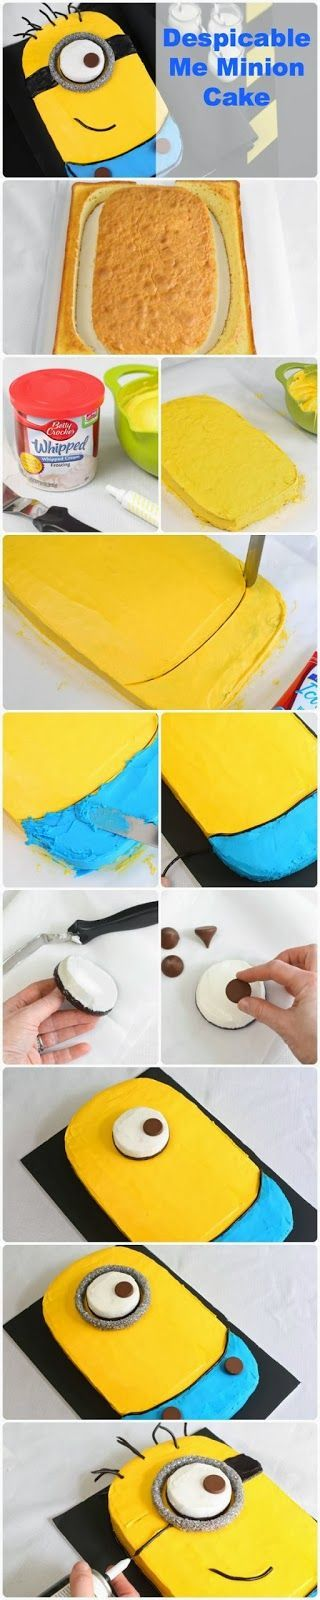 How to Make a Minion Cake | ... have to make this Minion Cake purple for a bday Oh goodness